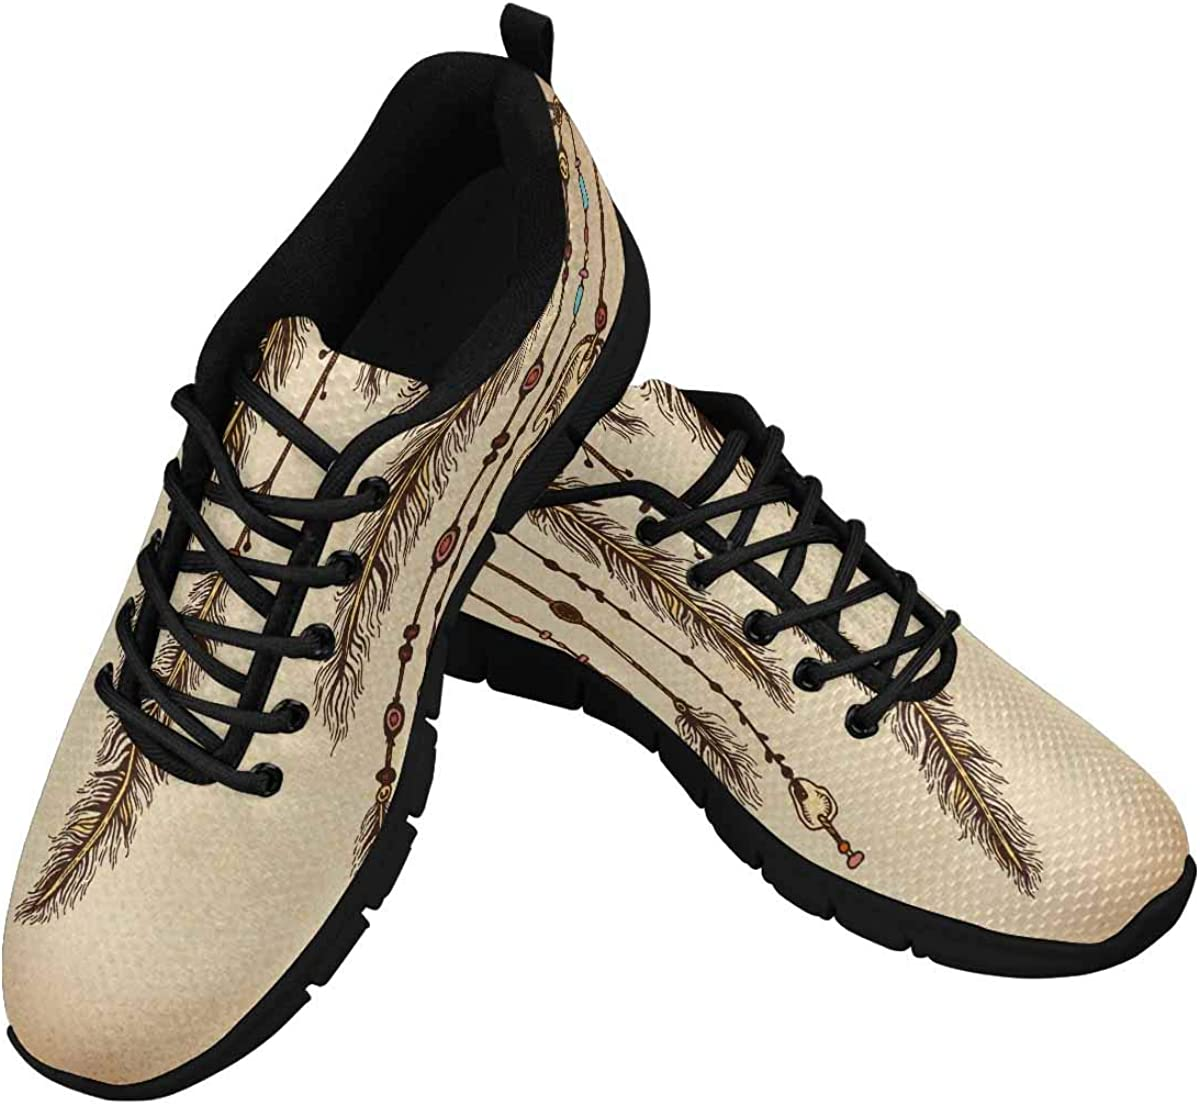 INTERESTPRINT Feathers and Ethnic Women's Tennis Running Shoes Lightweight Sneakers